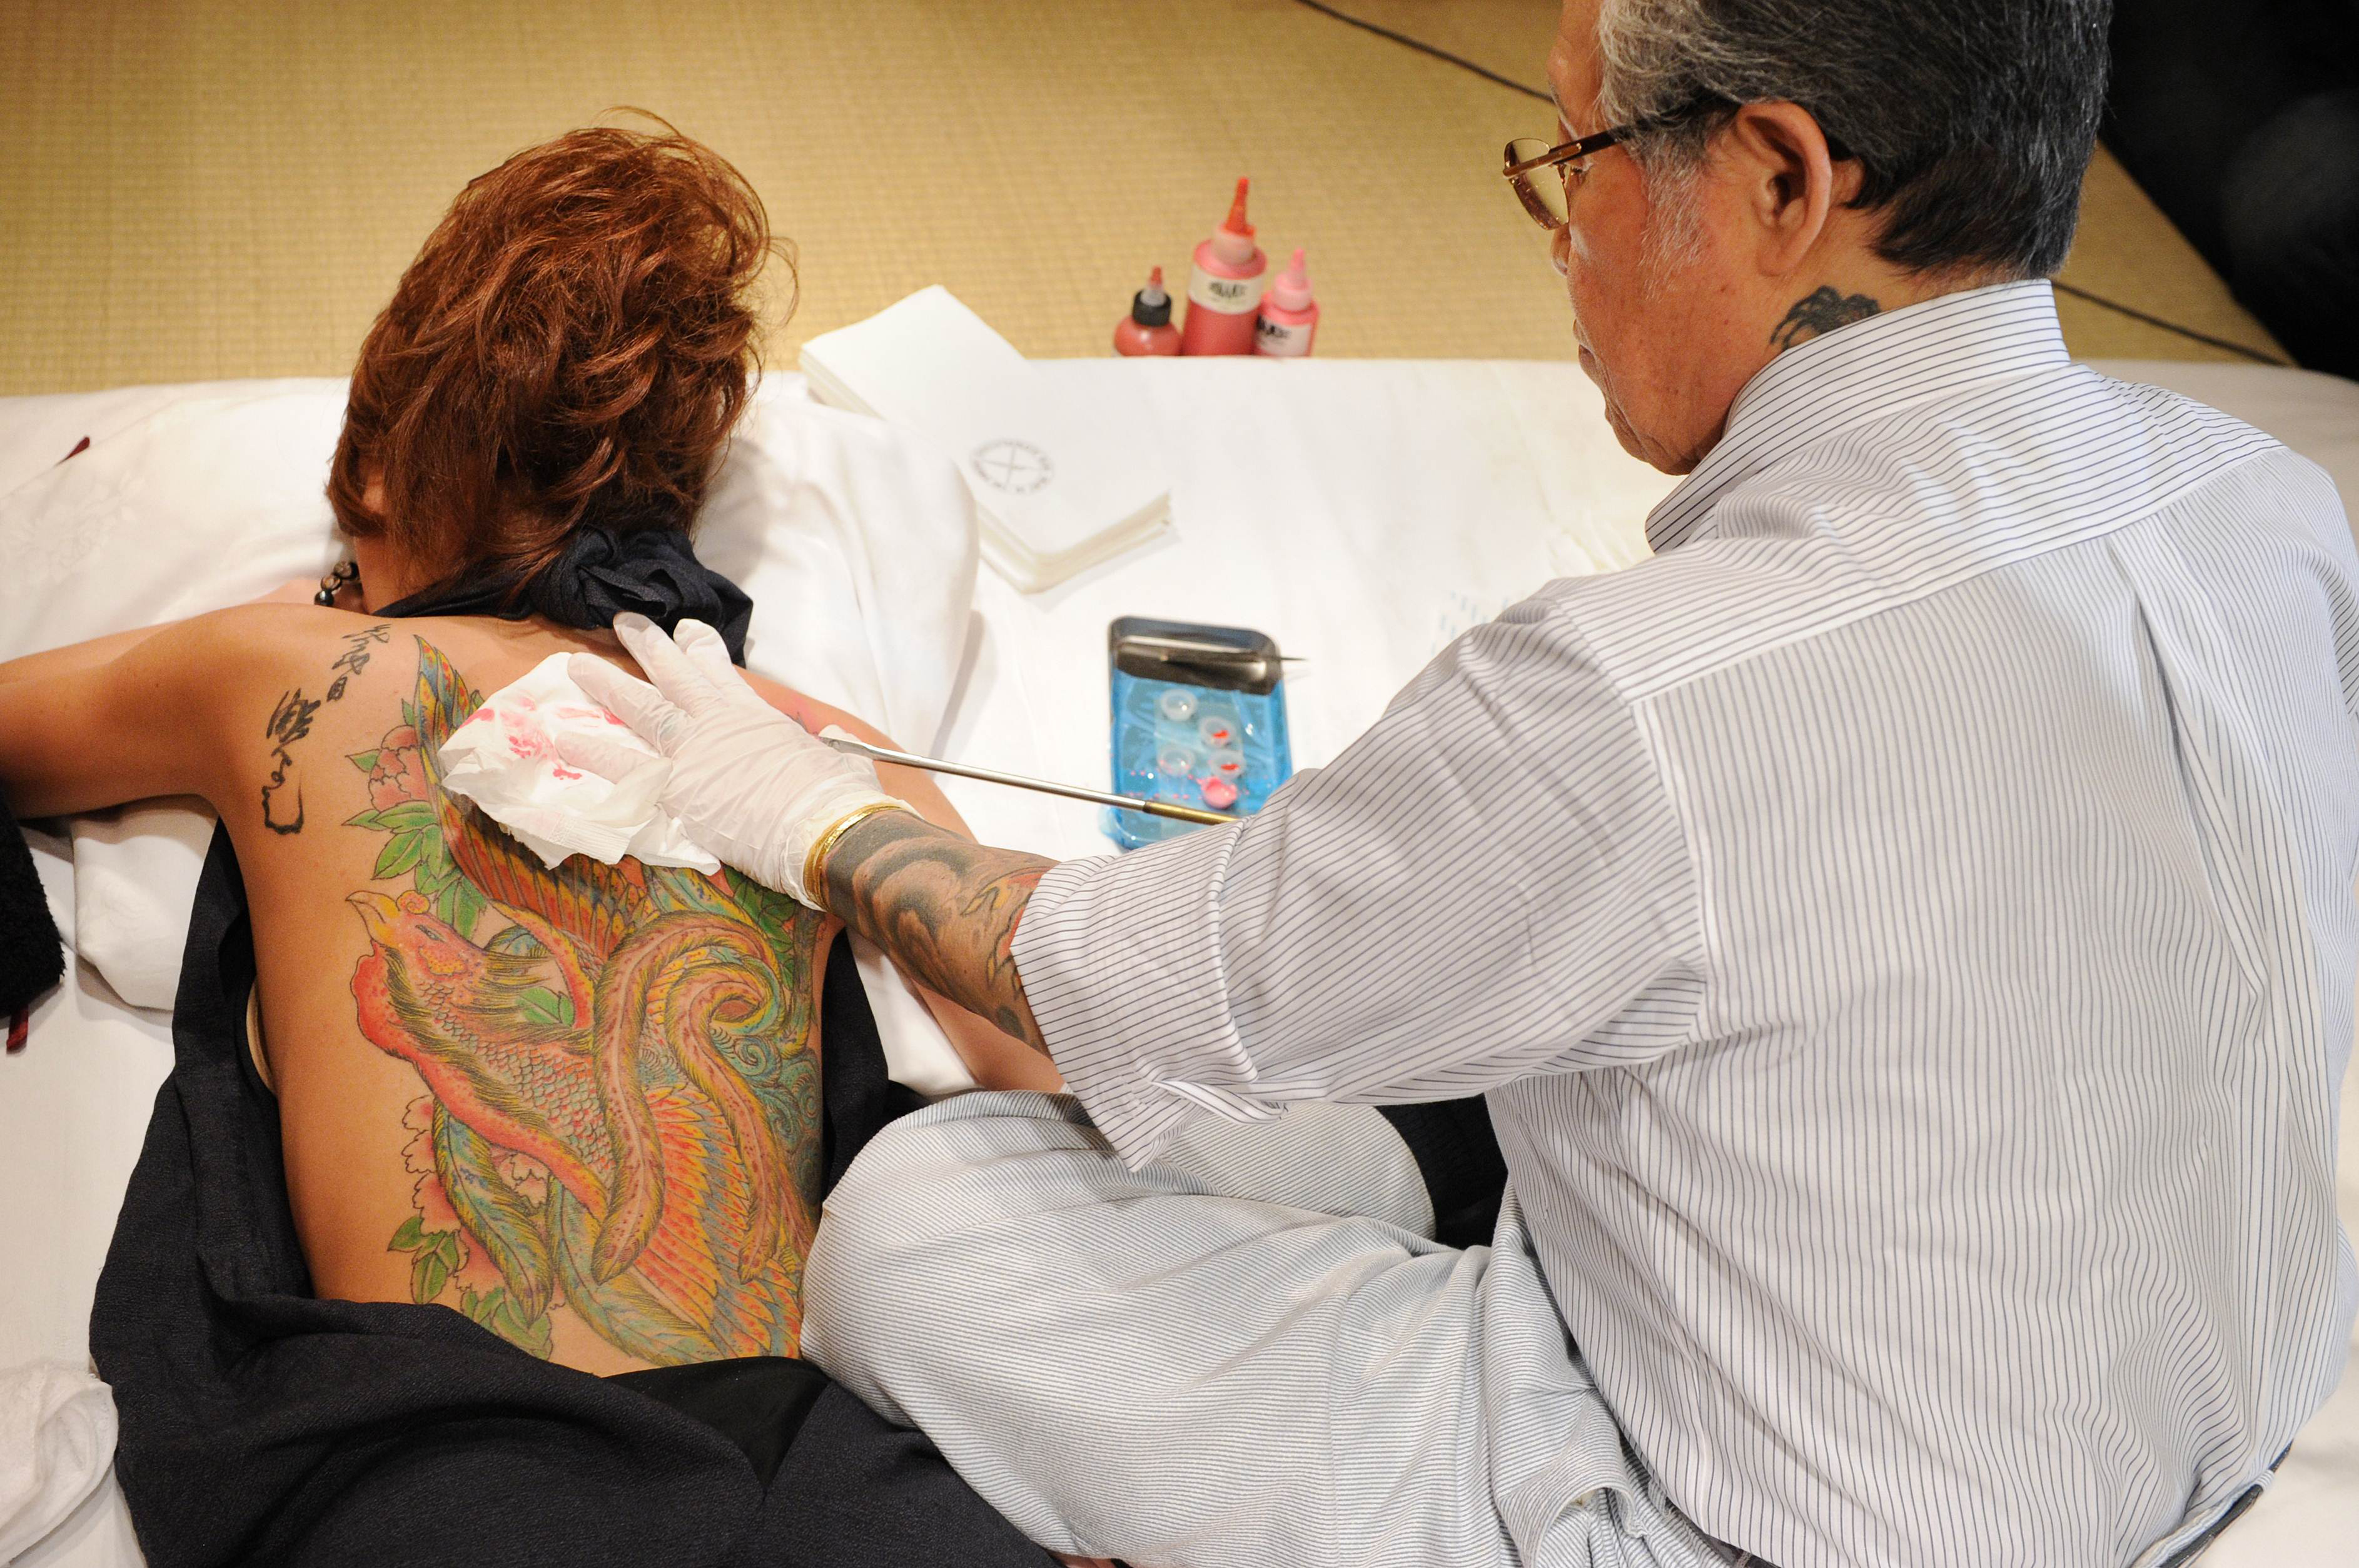 Best to consult an expert before getting a cryptic kanji tattoo master at work japanese tattooist horiyoshii iii tattoos a flower on the back of a biocorpaavc